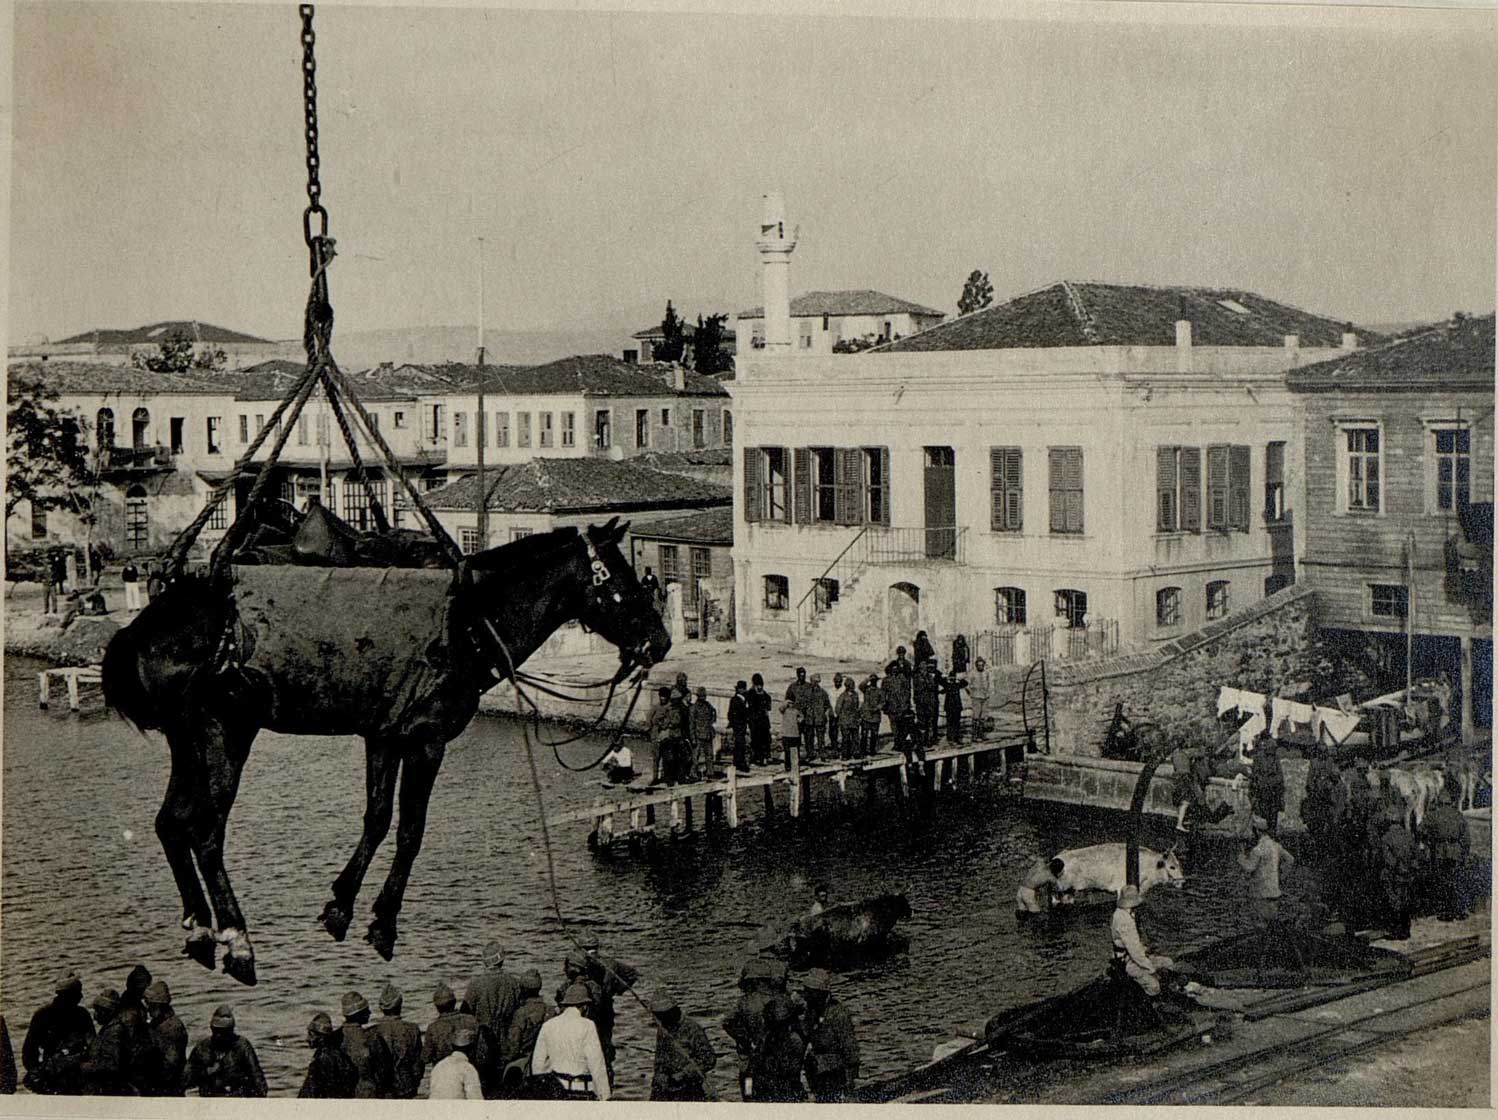 Unloading a horse at the Turkish port of Canakkale, during the Dardanelles campaign.